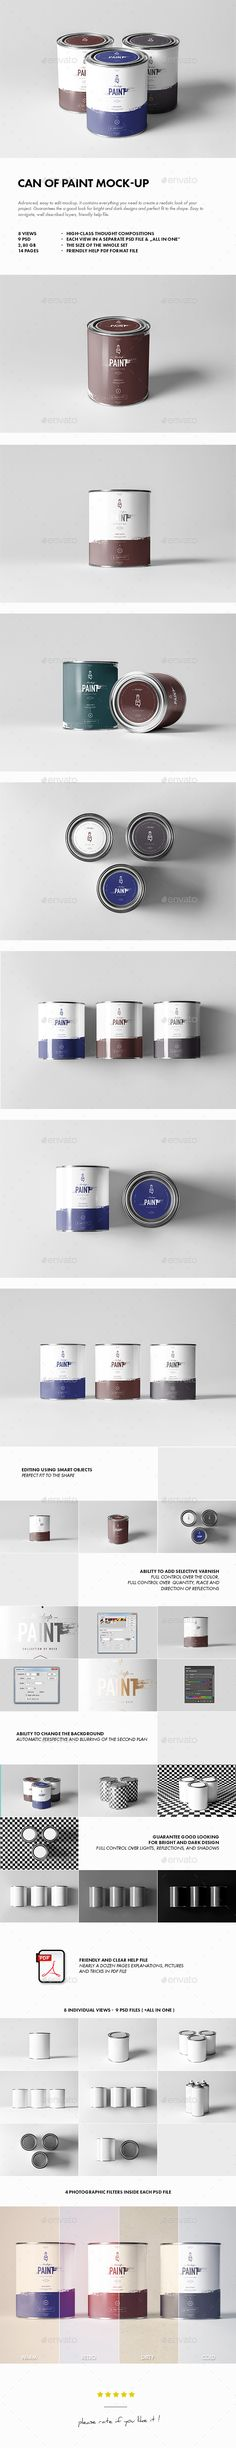 Can of Paint Mockup — Photoshop PSD #mock #metal • Available here → https://graphicriver.net/item/can-of-paint-mockup/17740668?ref=pxcr